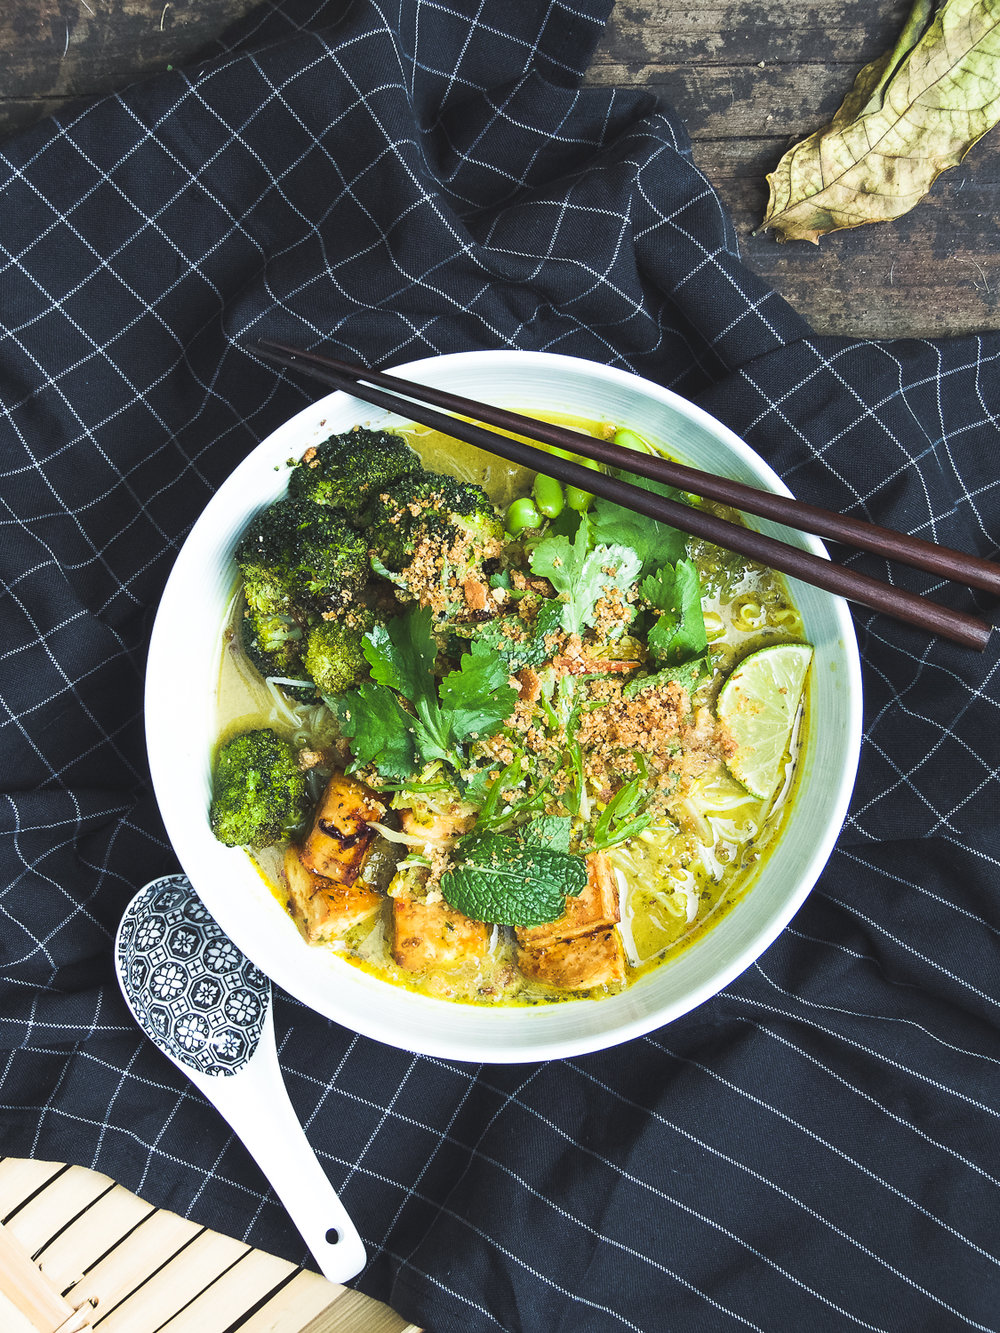 Vegan Laksa - this bowl of laksa will keep you warm this winter.